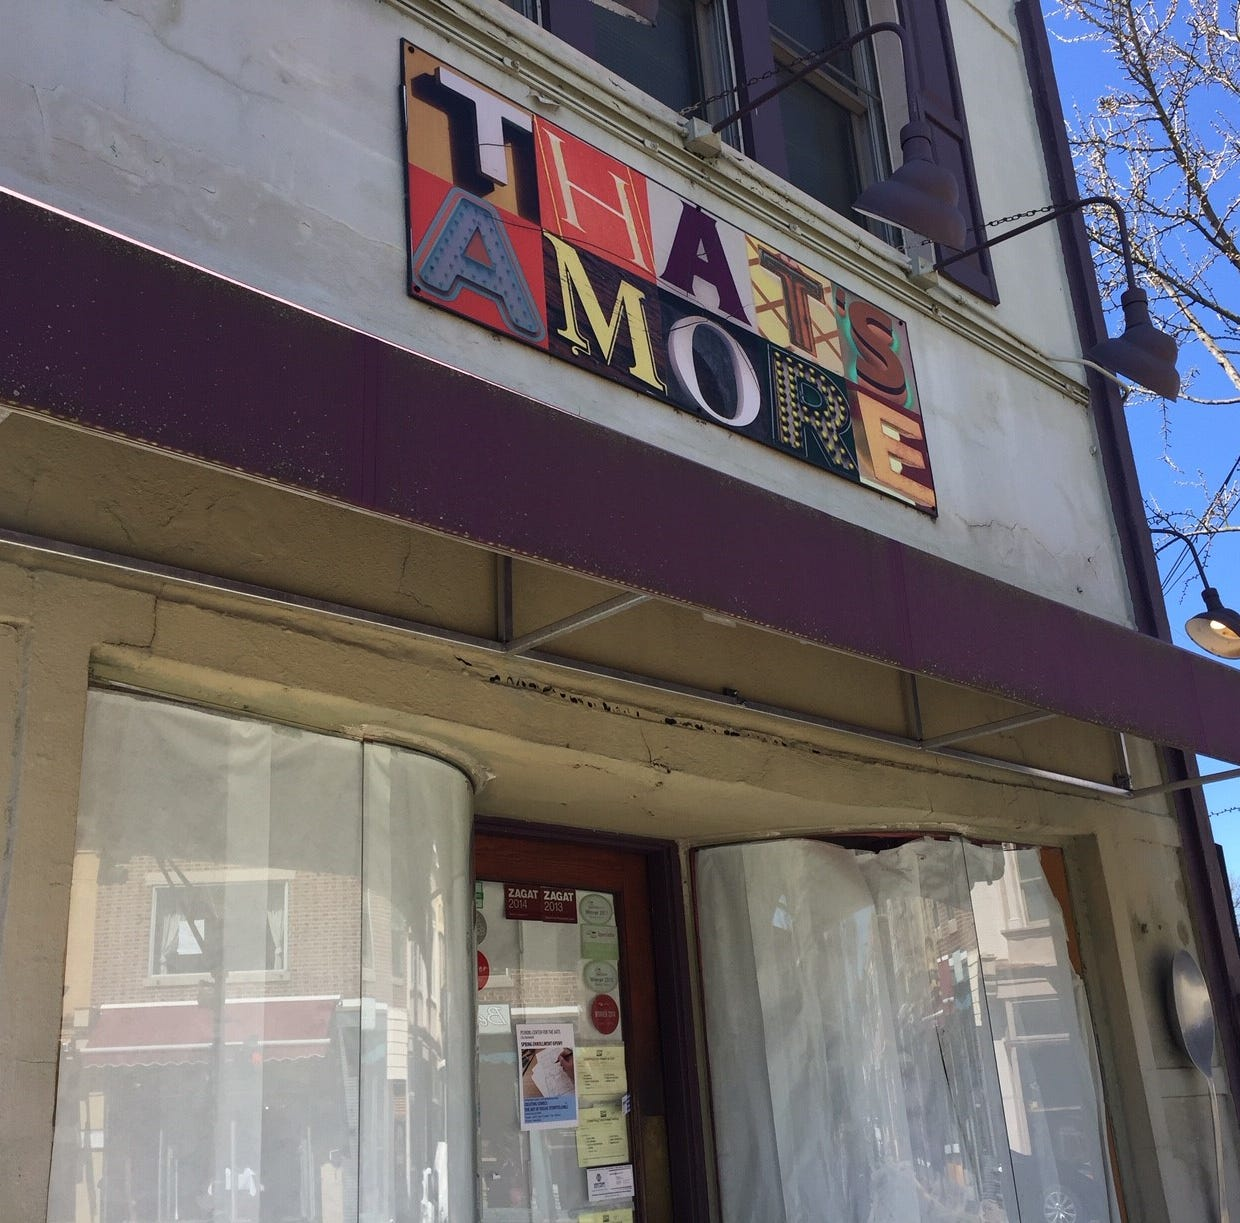 More to love: That's Amore to open second location in Merchantville